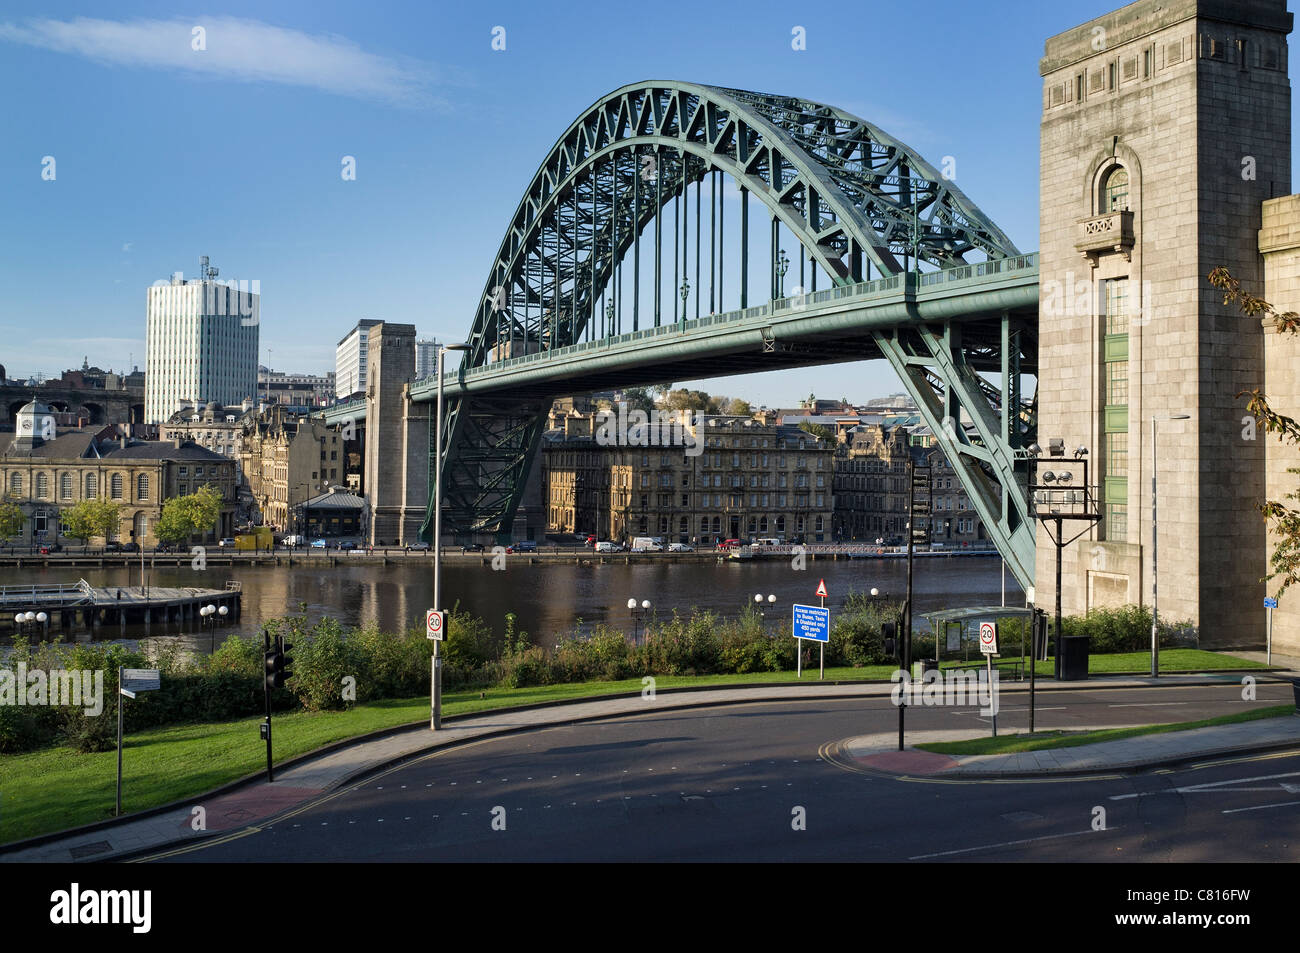 Newcastle Quayside and the Tyne Bridge viewed from the Gateshead side of the river. - Stock Image